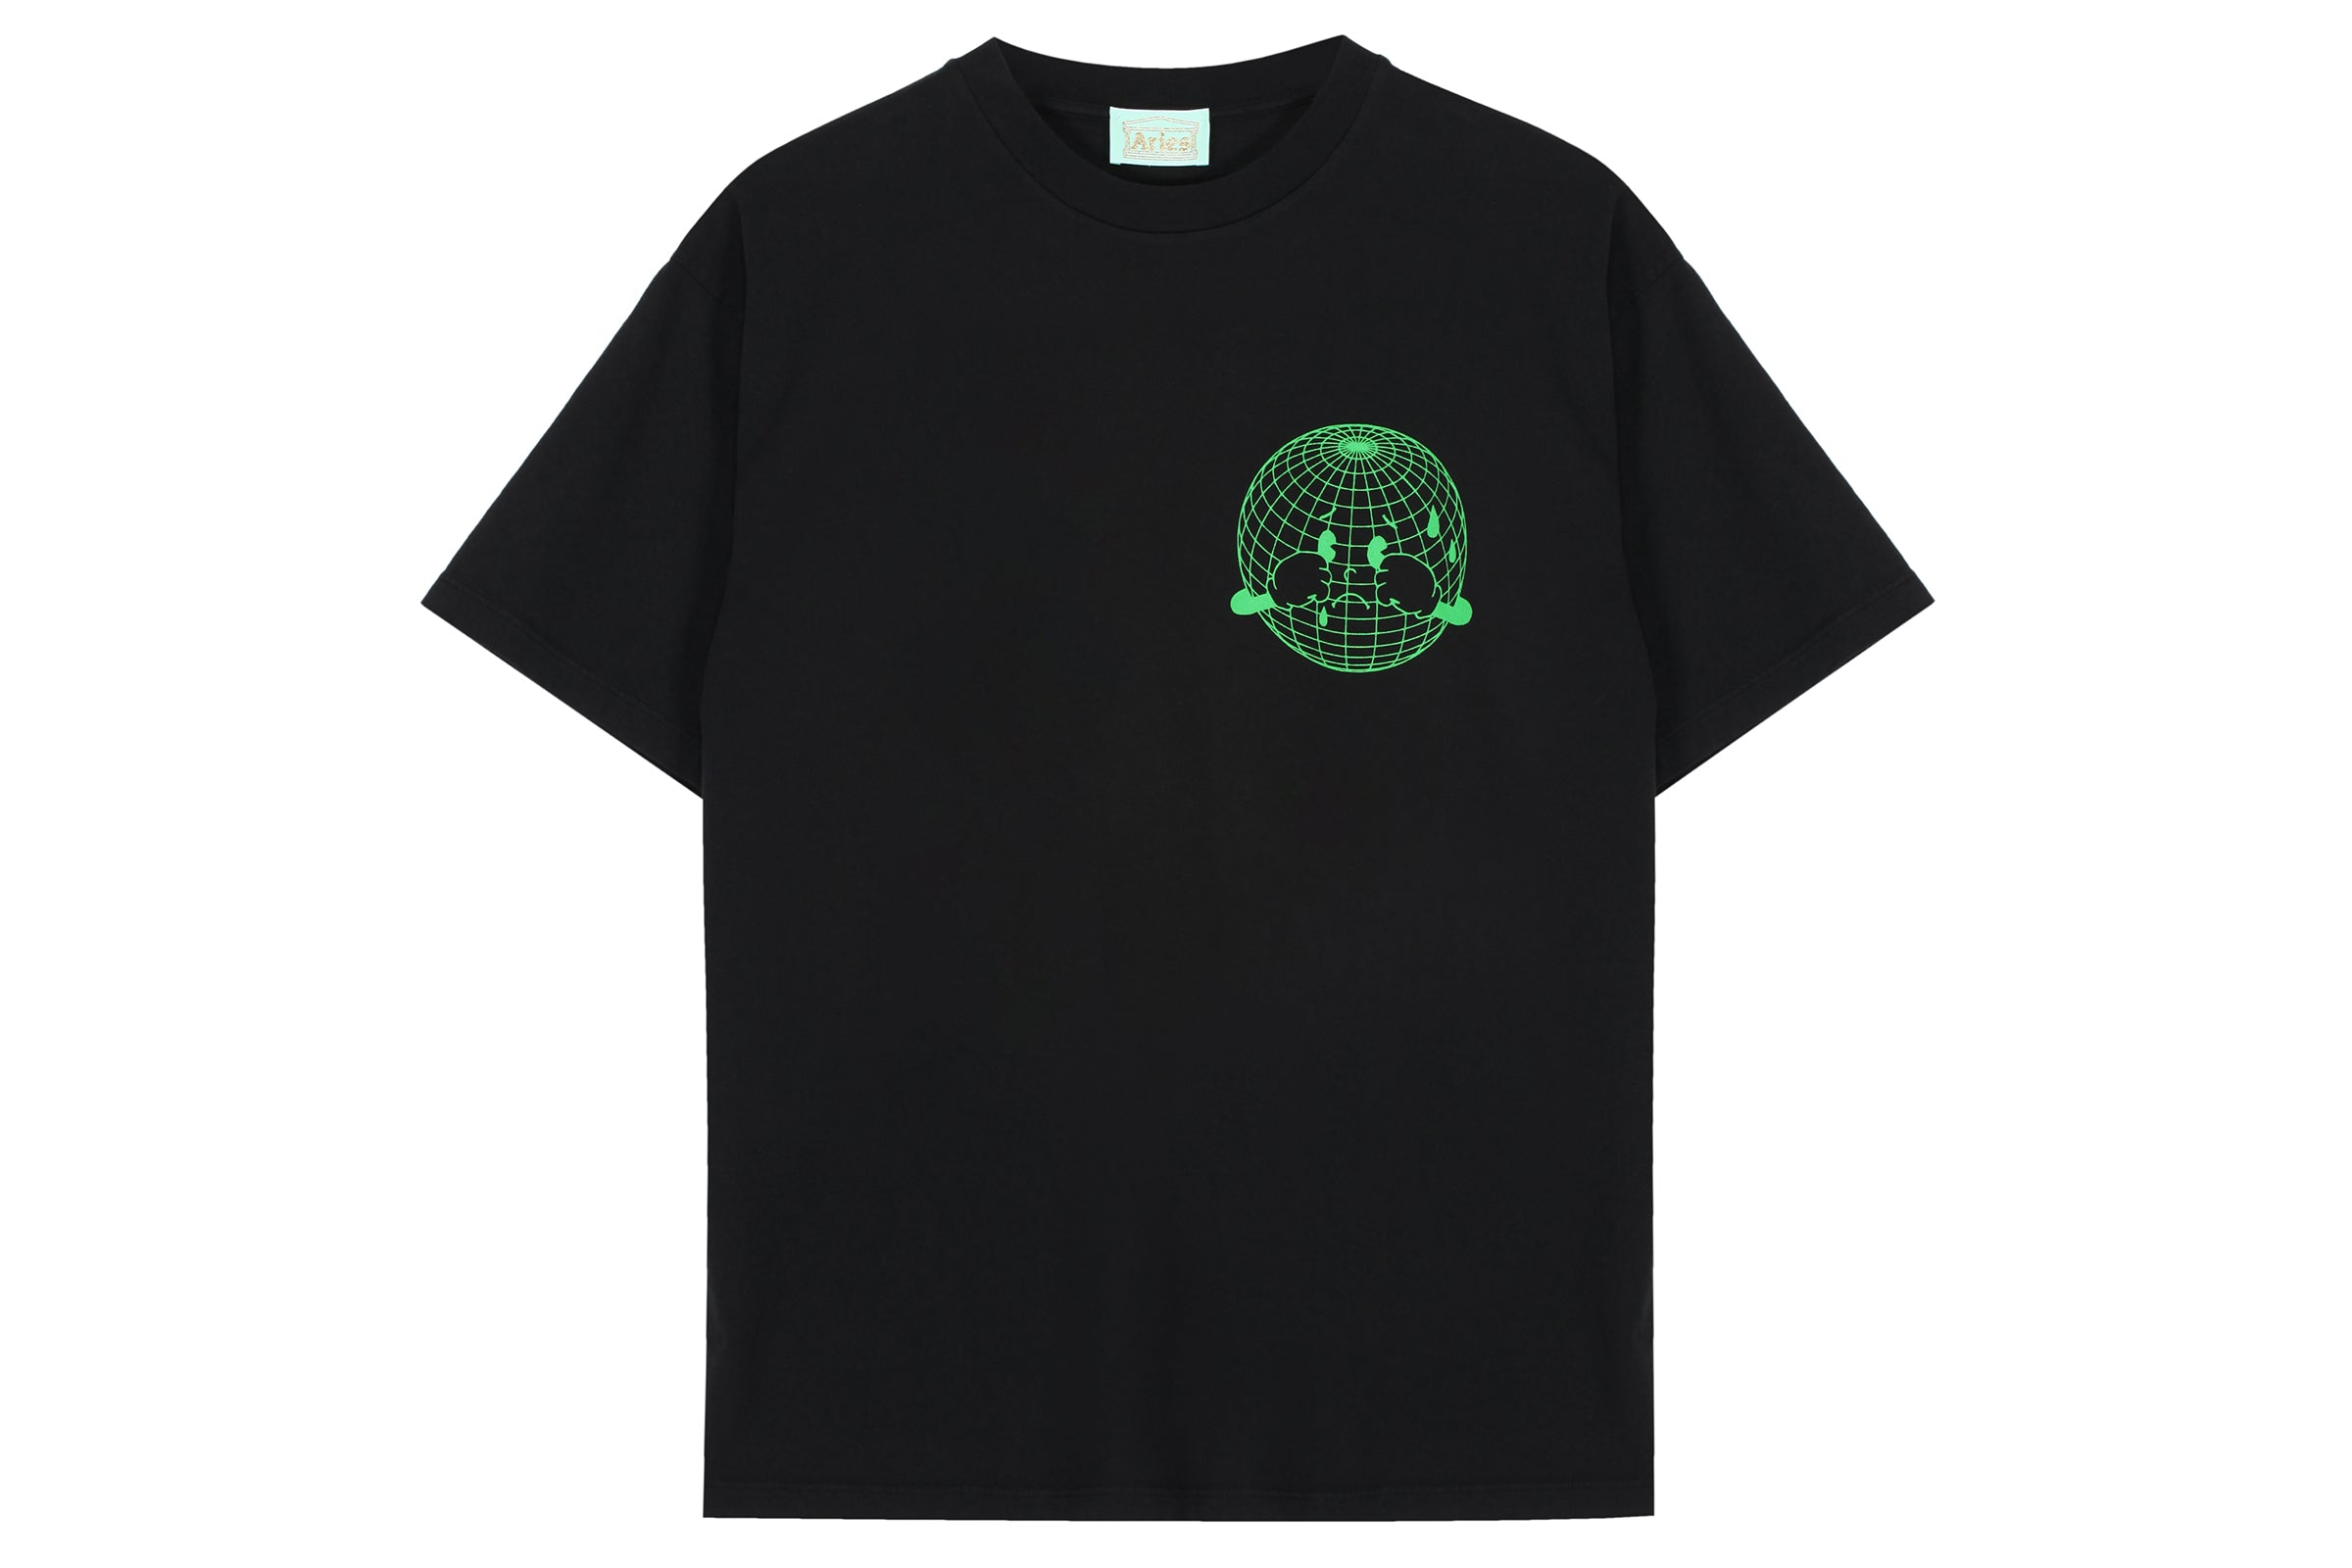 Aries Sad Planet SS Tee